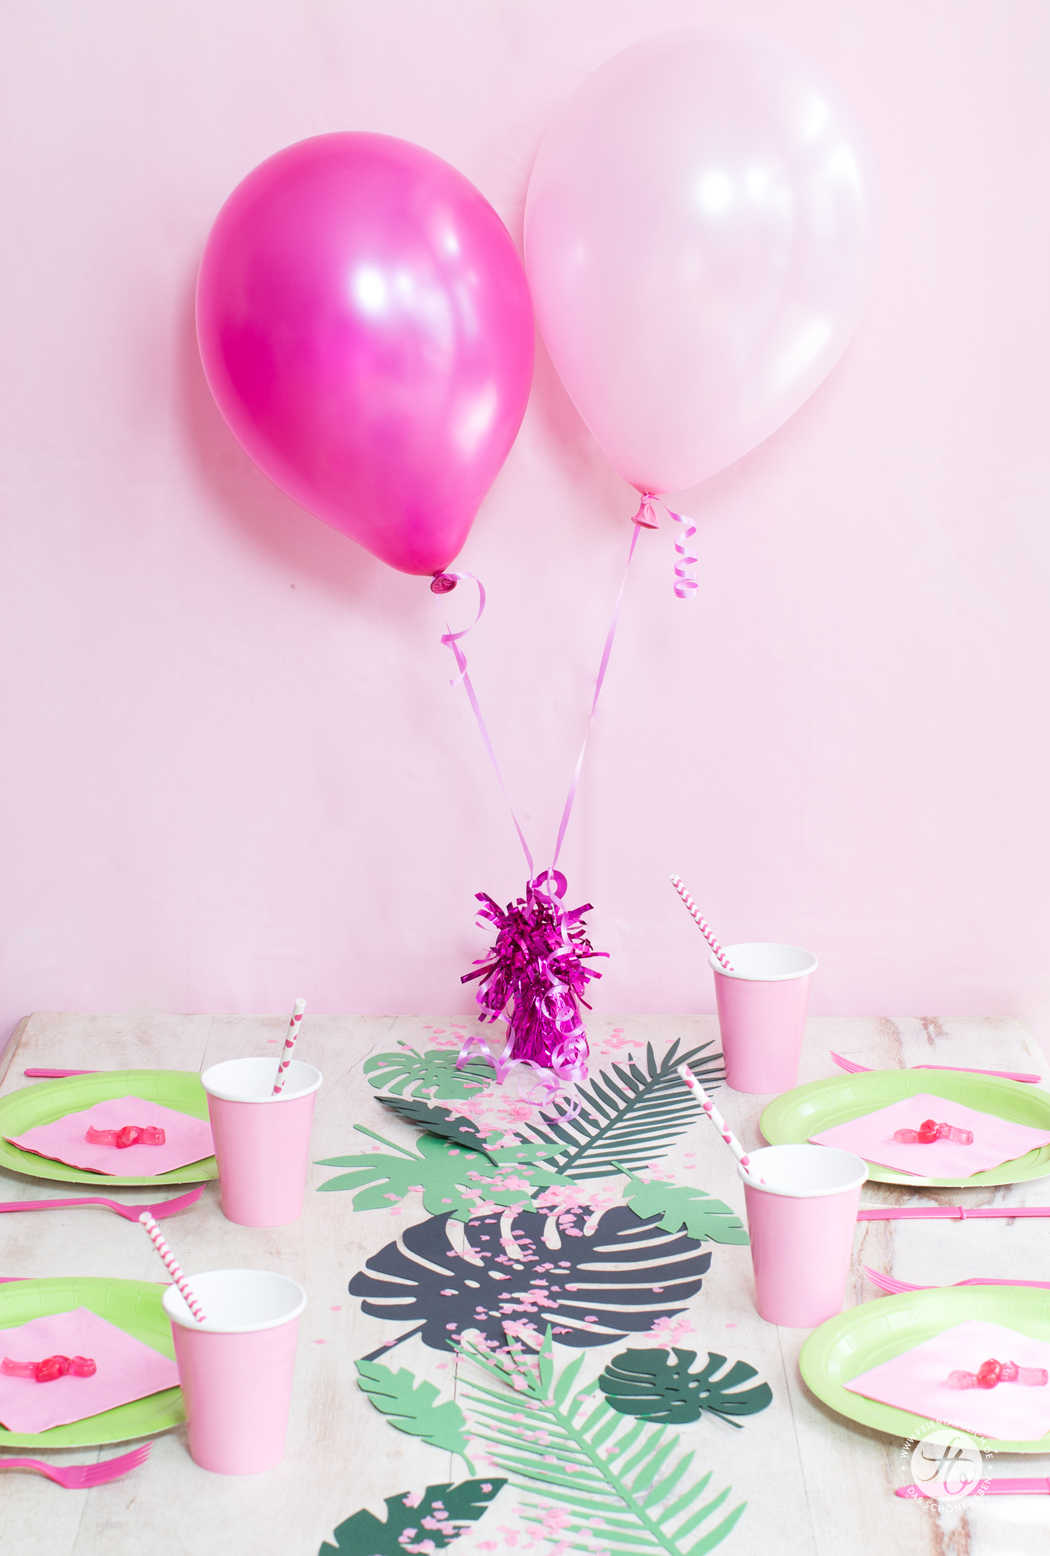 HappyMottoparty Flamingo, Tischdekoration, Luftballons